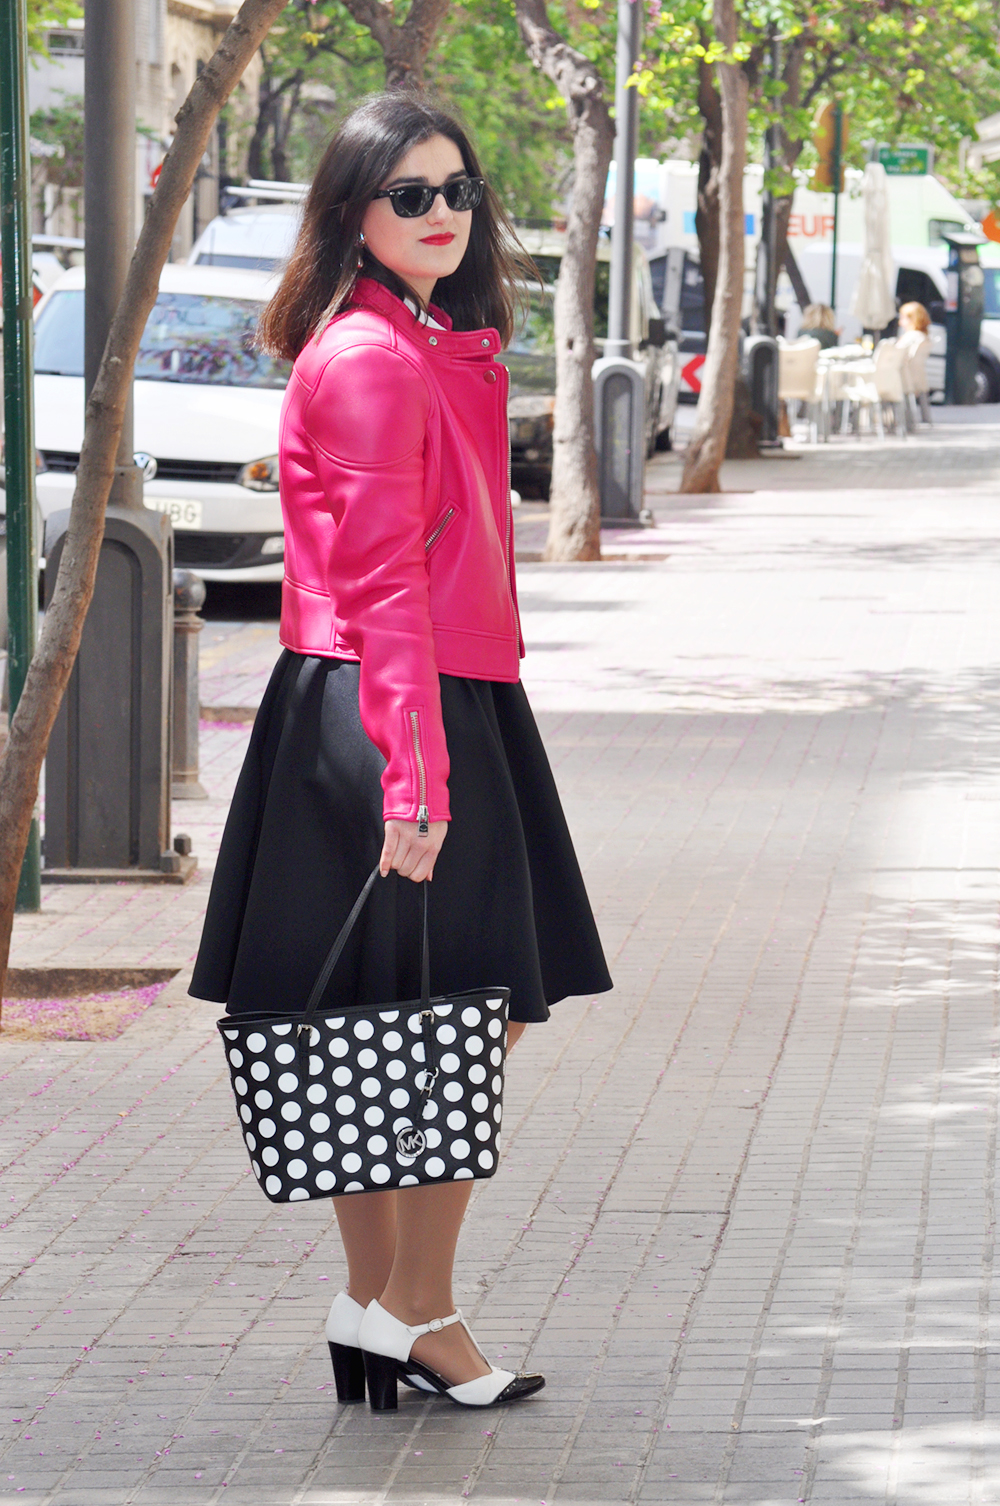 something fashion valencia blogger moda estilo style spain, coach hot pink biker jacket michael kors, spring blossom VLC vintage earrings outfit, fblogger estilismo lady mod style 50's midi skirt black, black and white hispanitas shoes heels zapatos, bloggers de moda valencia